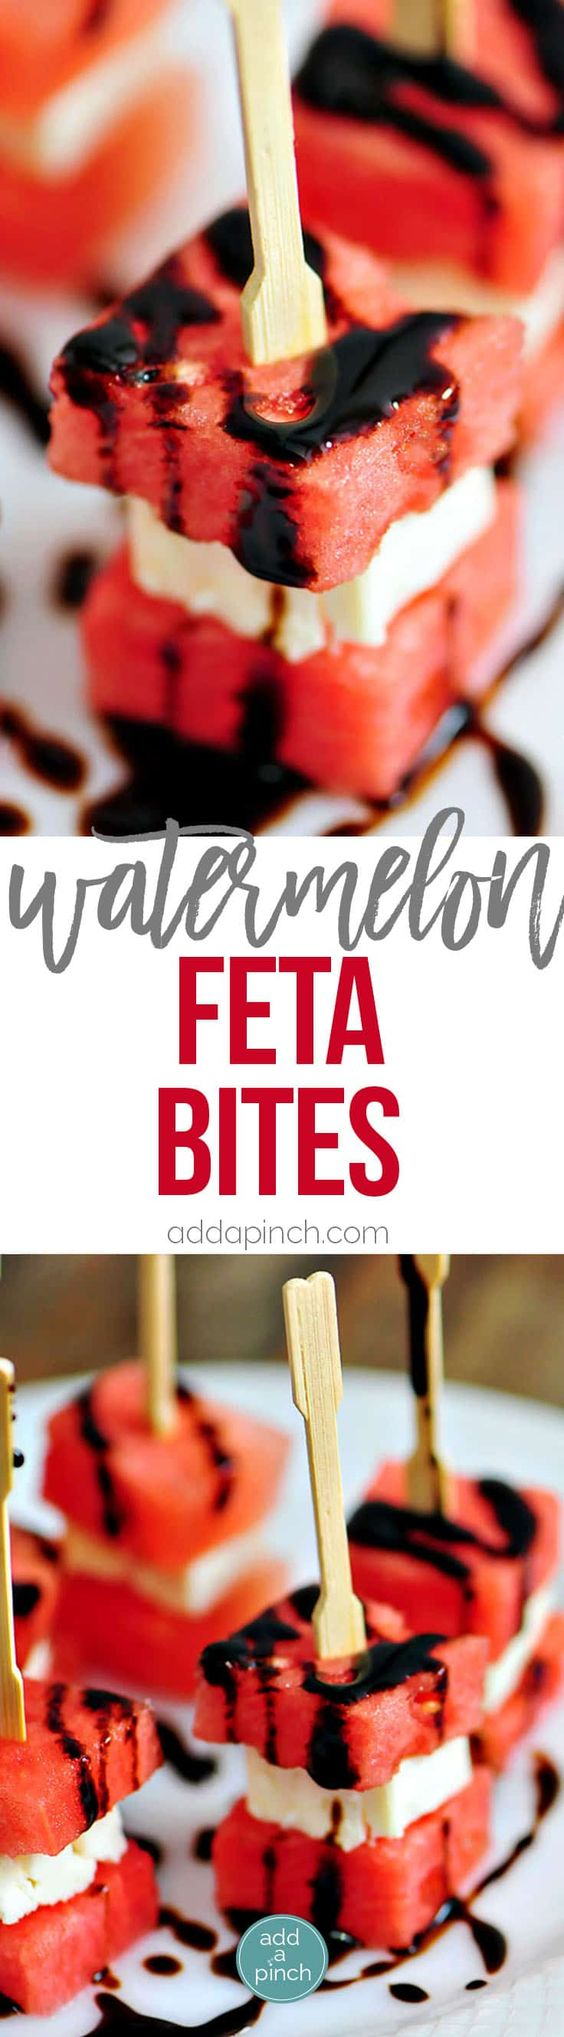 Watermelon Feta Bites Recipe - Watermelon Feta Appetizer Bites make a perfect appetizer that just screams summer! These easy, elegant Watermelon Feta Appetizer Bites come together quickly. // addapinch.com